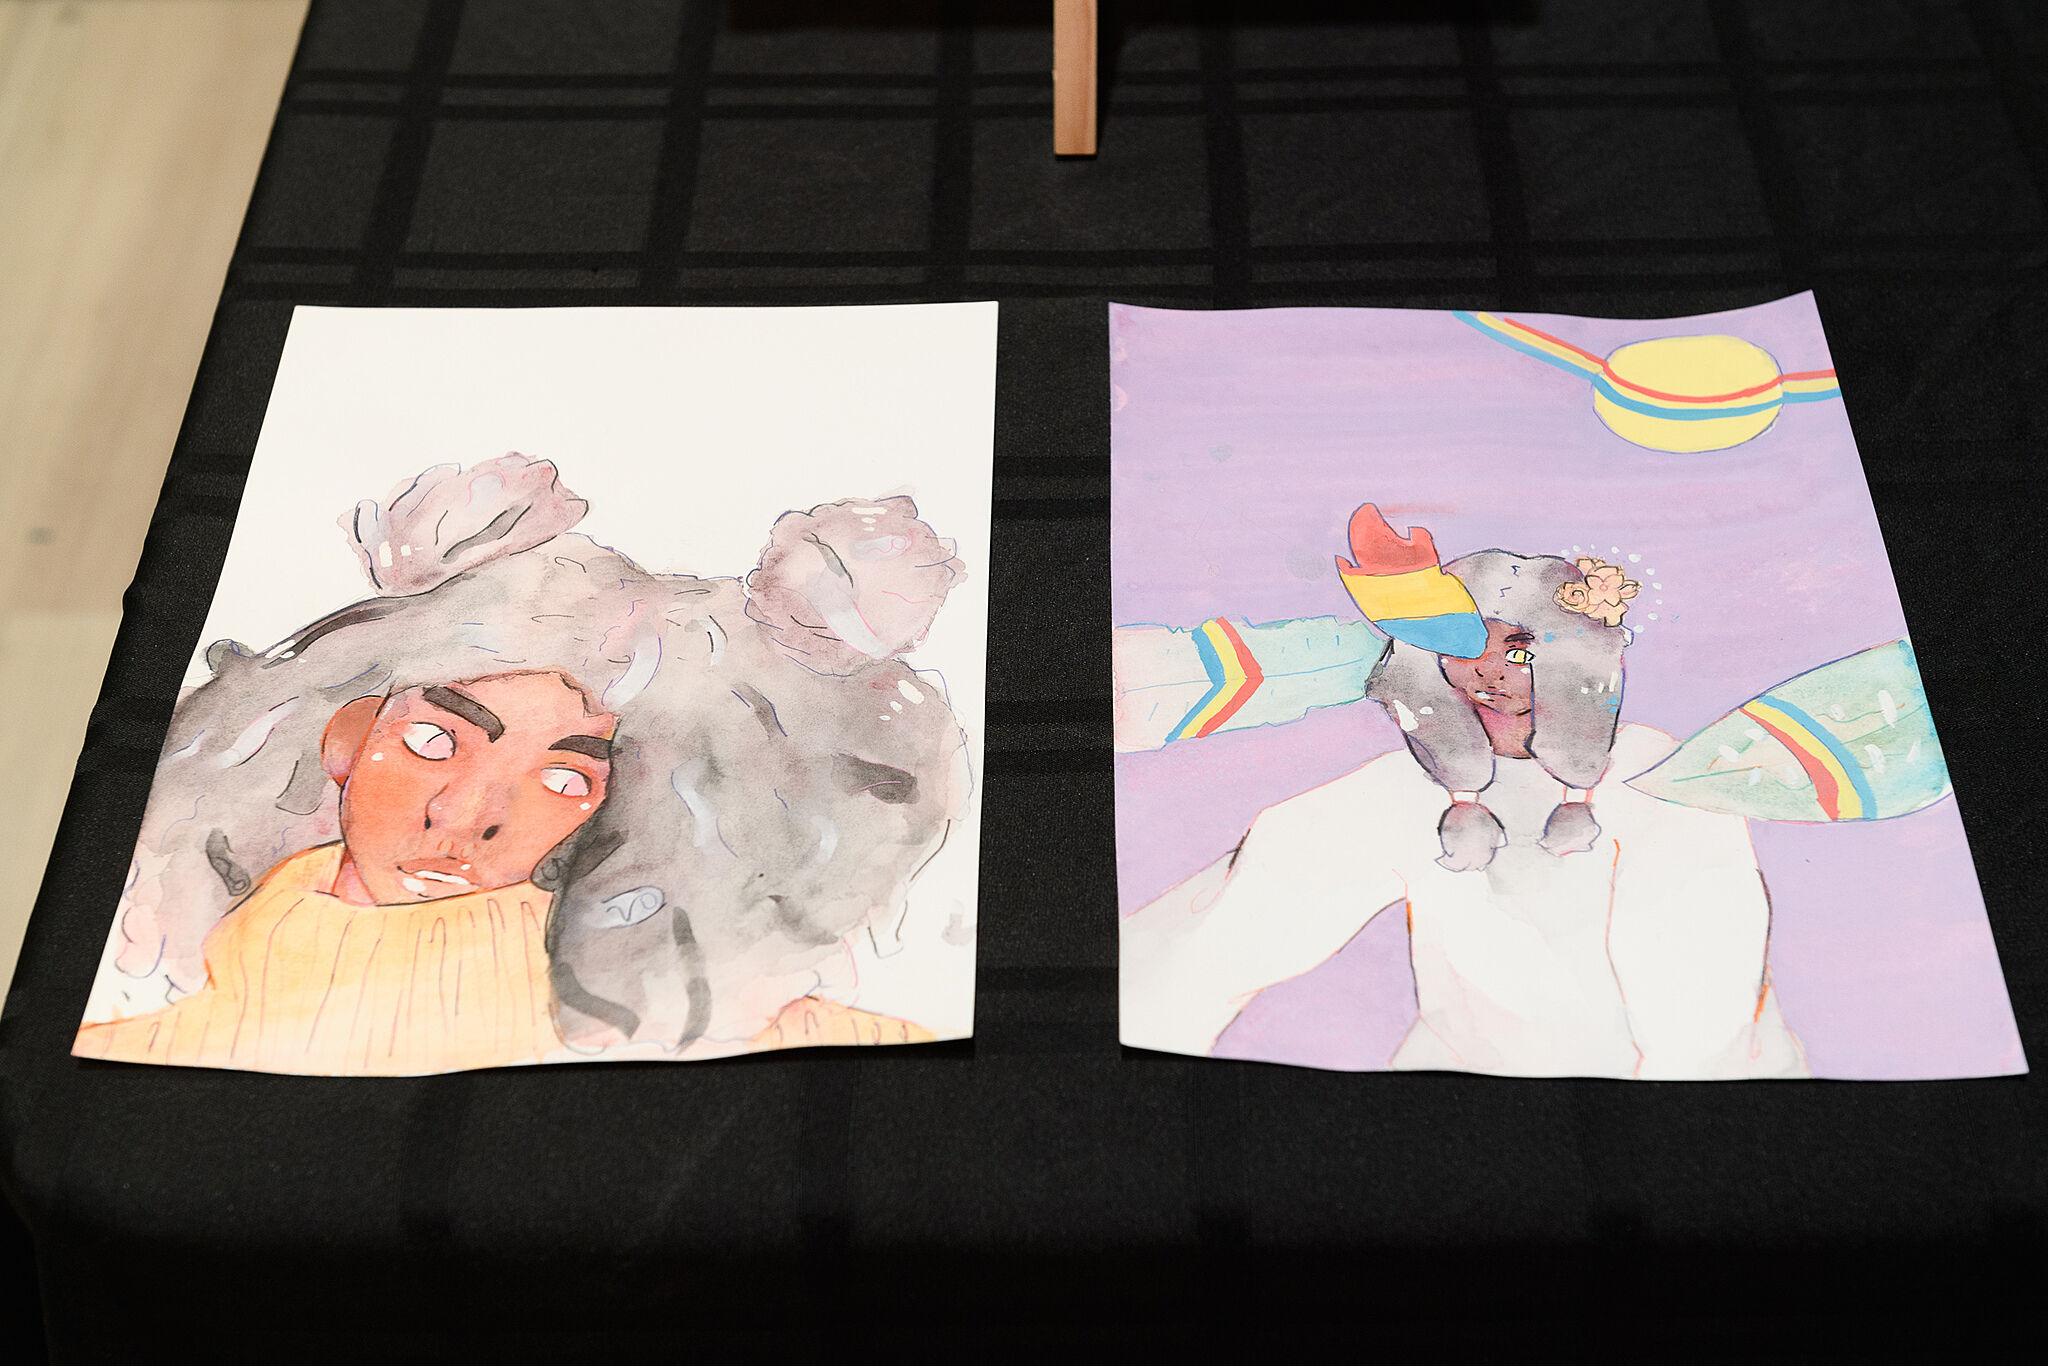 Two paintings of a person in a unique hat.